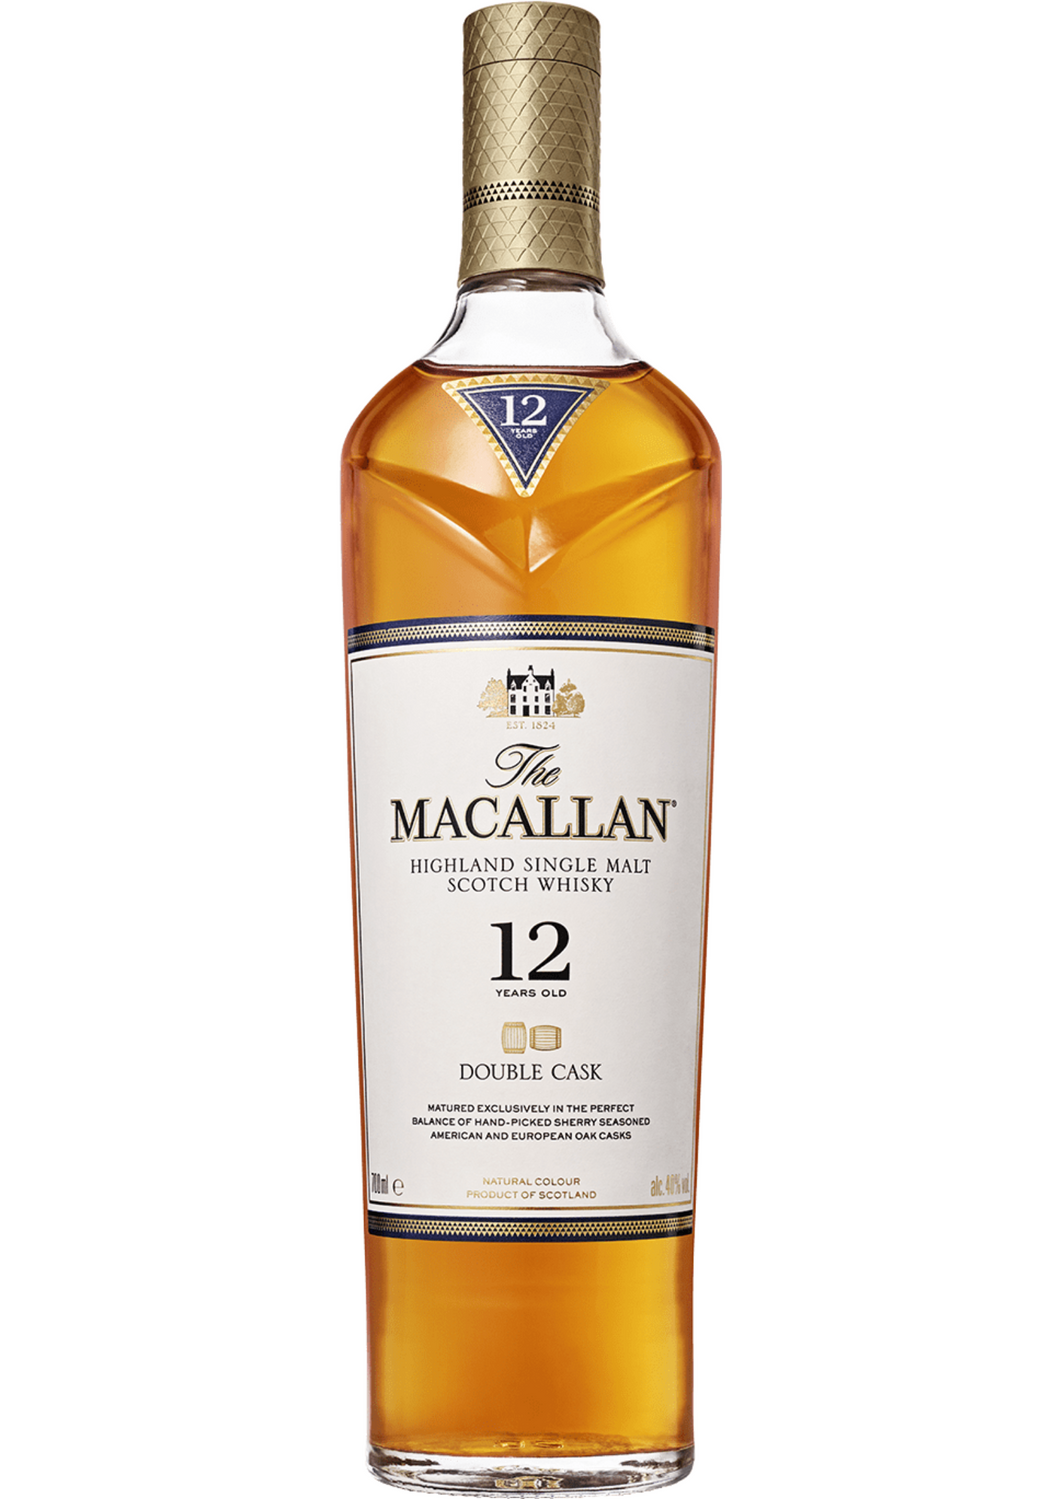 The Macallan Double Cask 12 Years Old - Vine0nline